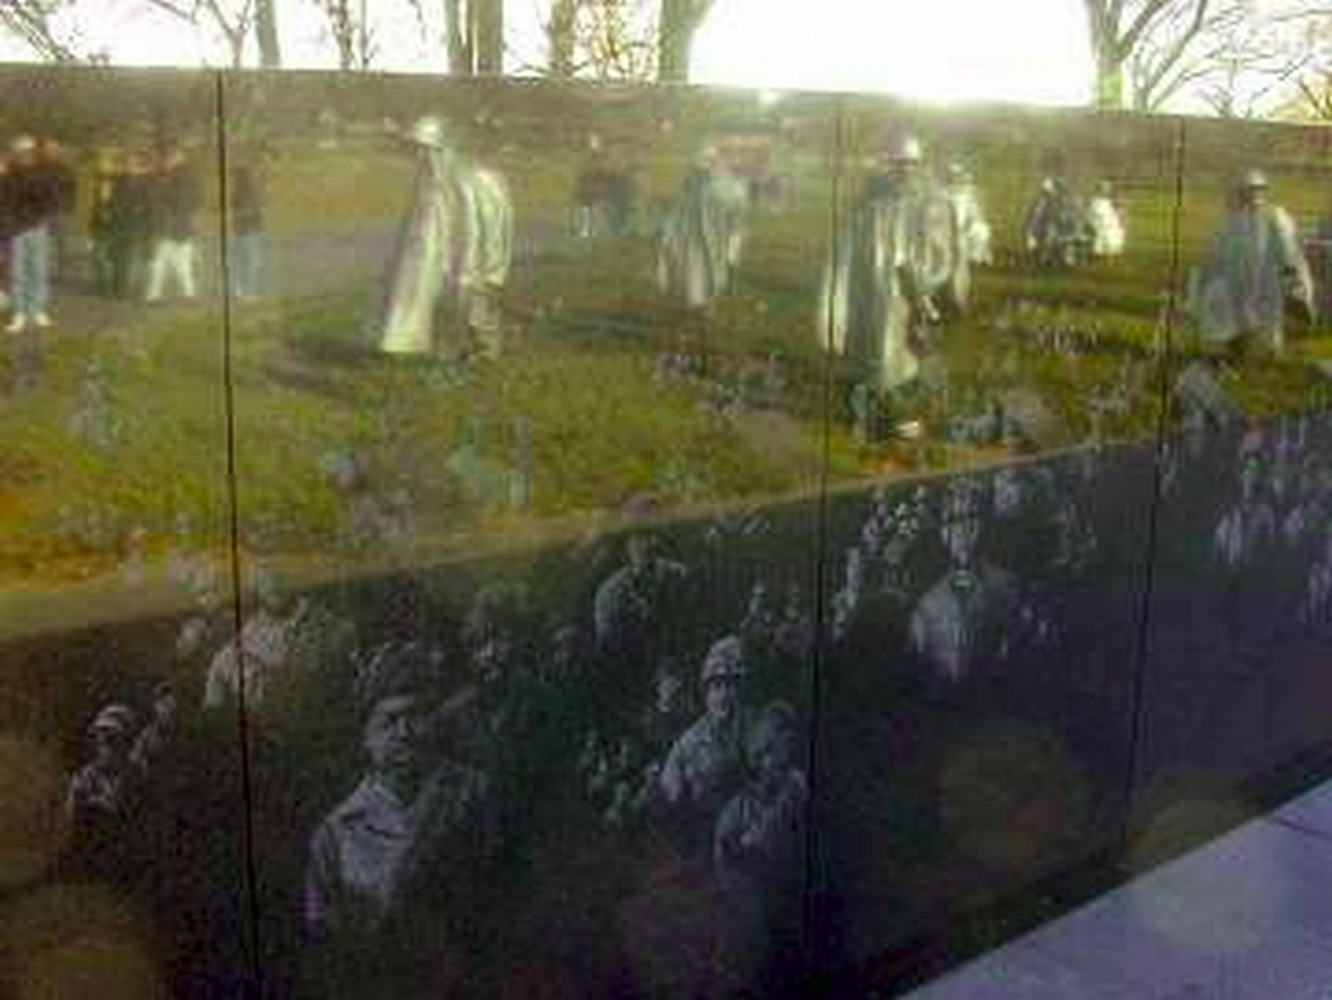 Washington DC, Korean War memorial